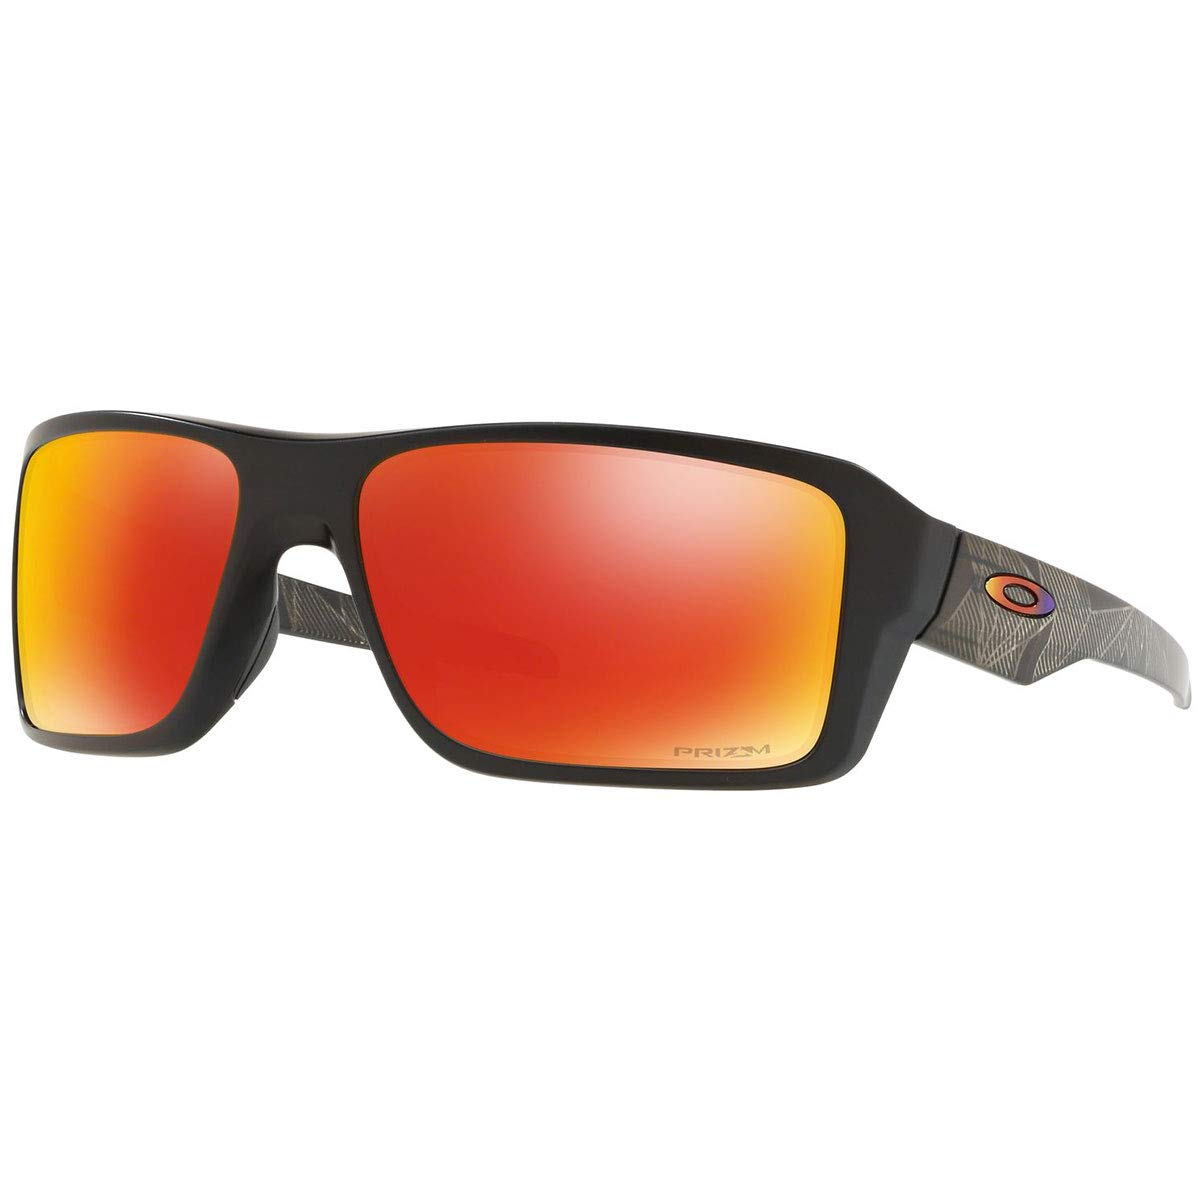 Oakley Men's Double Edge Polarized Iridium Rectangular Sunglasses MATTE BLACK PRIZMATIC 66.0 mm